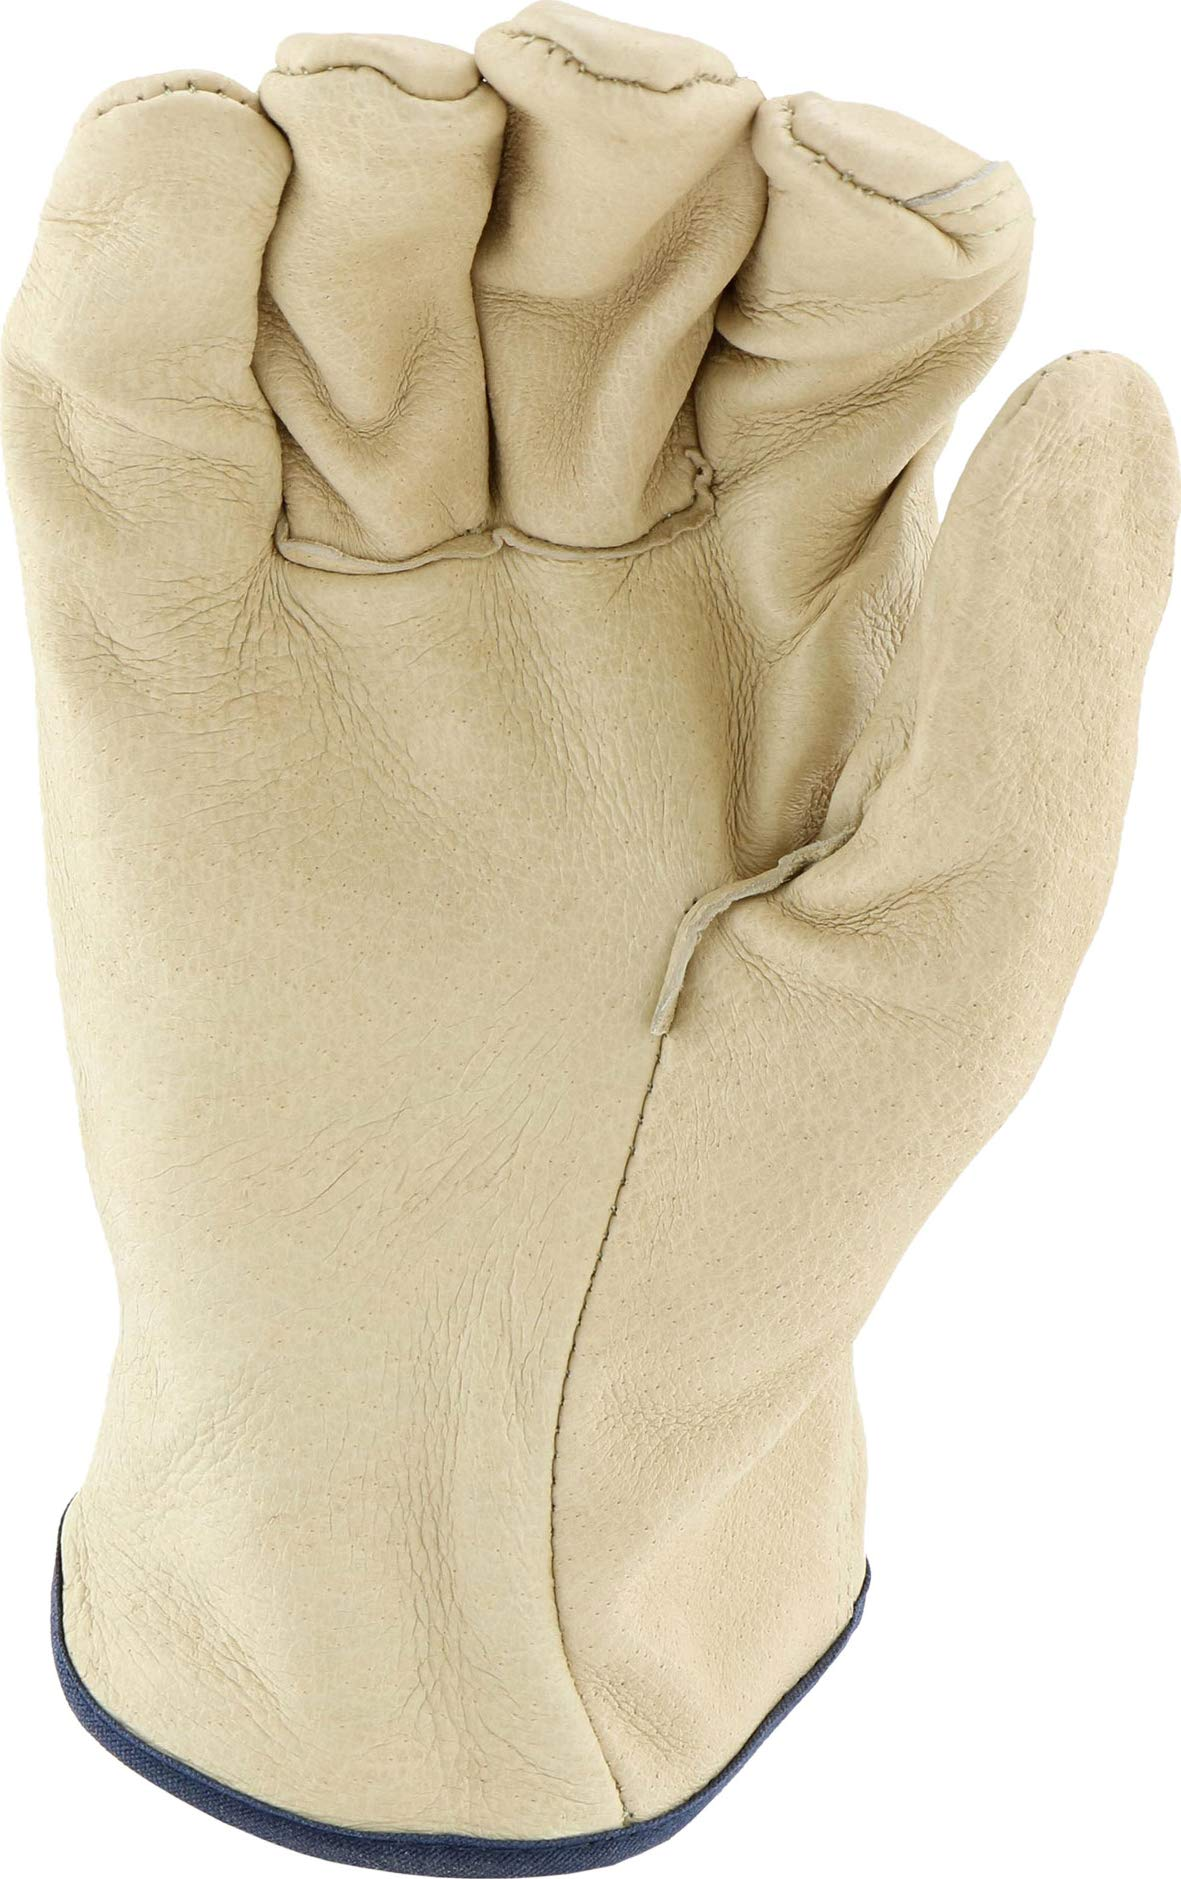 West Chester 994 Select Grain Pigskin Leather Driver Work Gloves: Straight Thumb, Large, 12 Pairs by West Chester (Image #6)